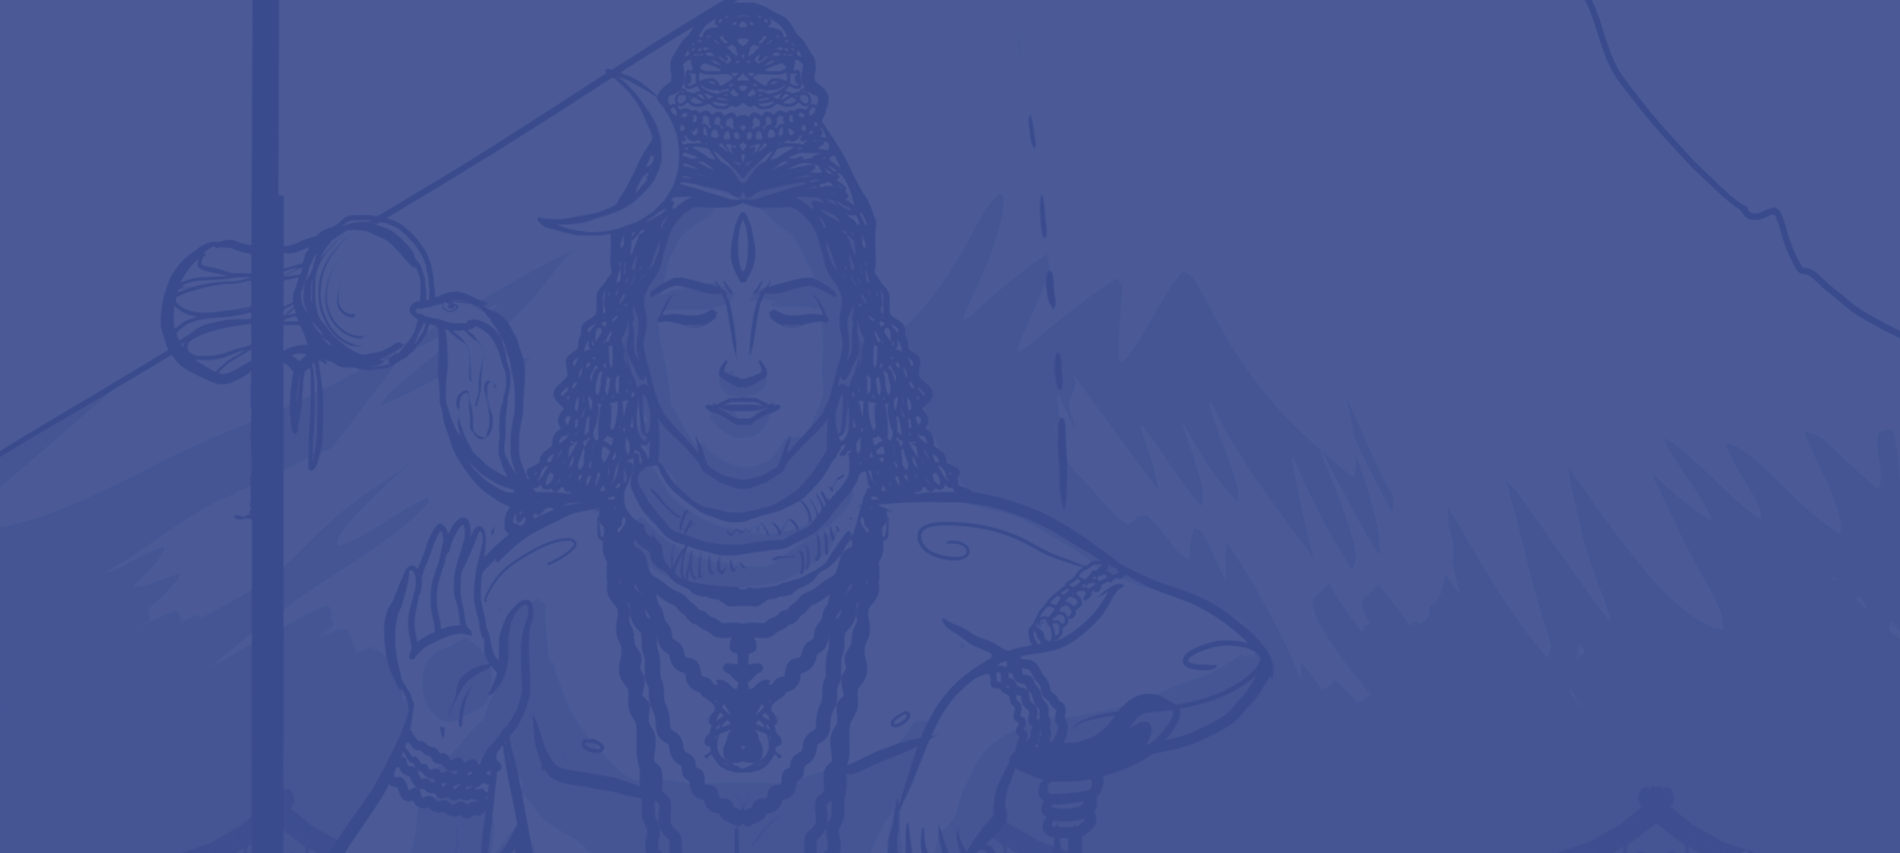 The Birth of Parvati, An Excerpt from The Man from The Egg